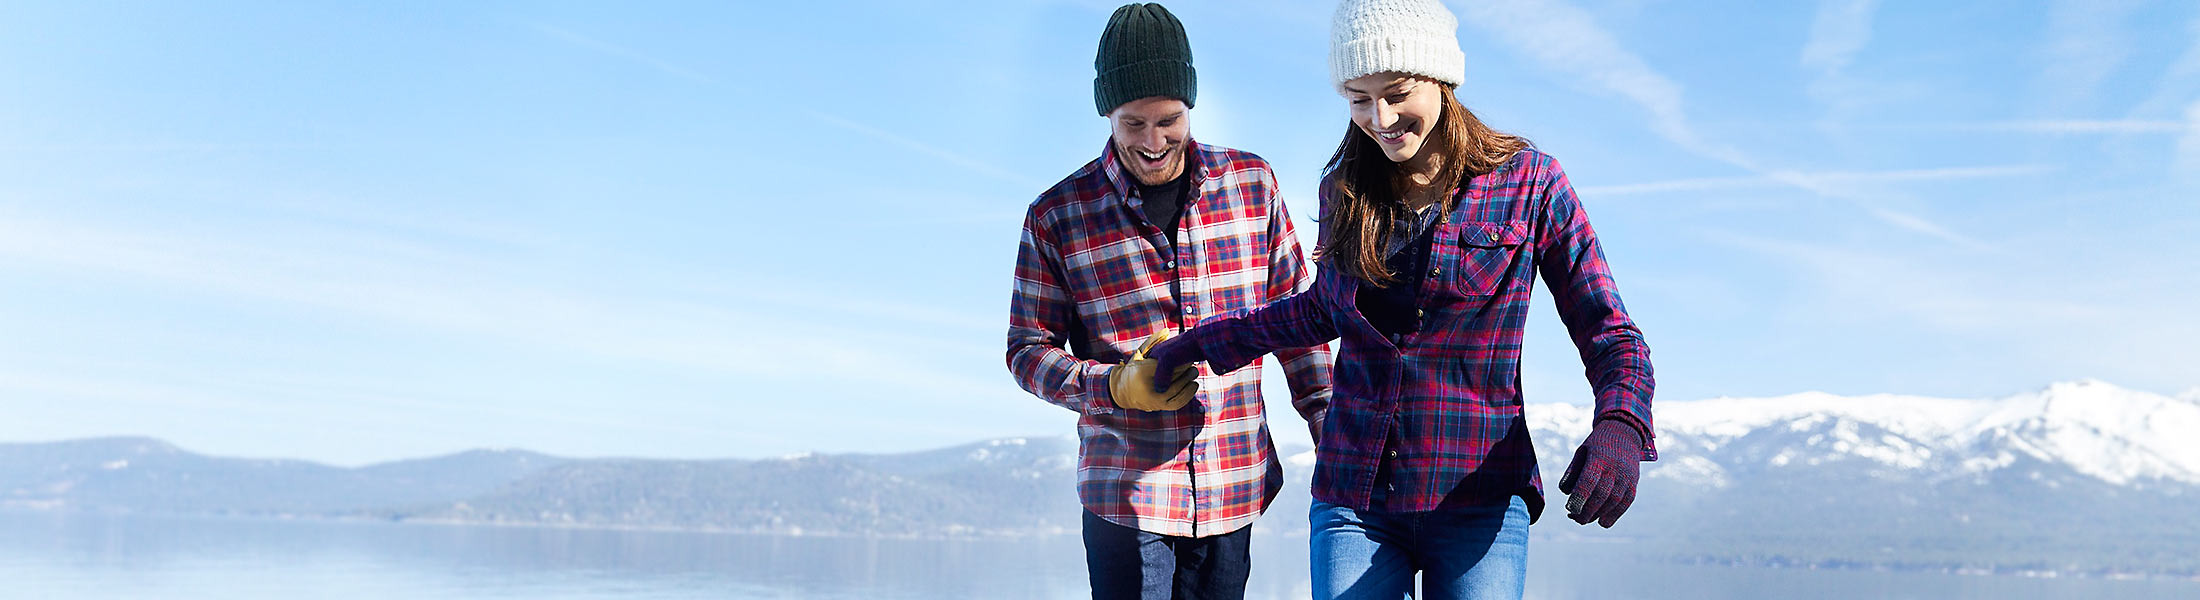 A man and a woman wearing flannel shirts hike near a lake